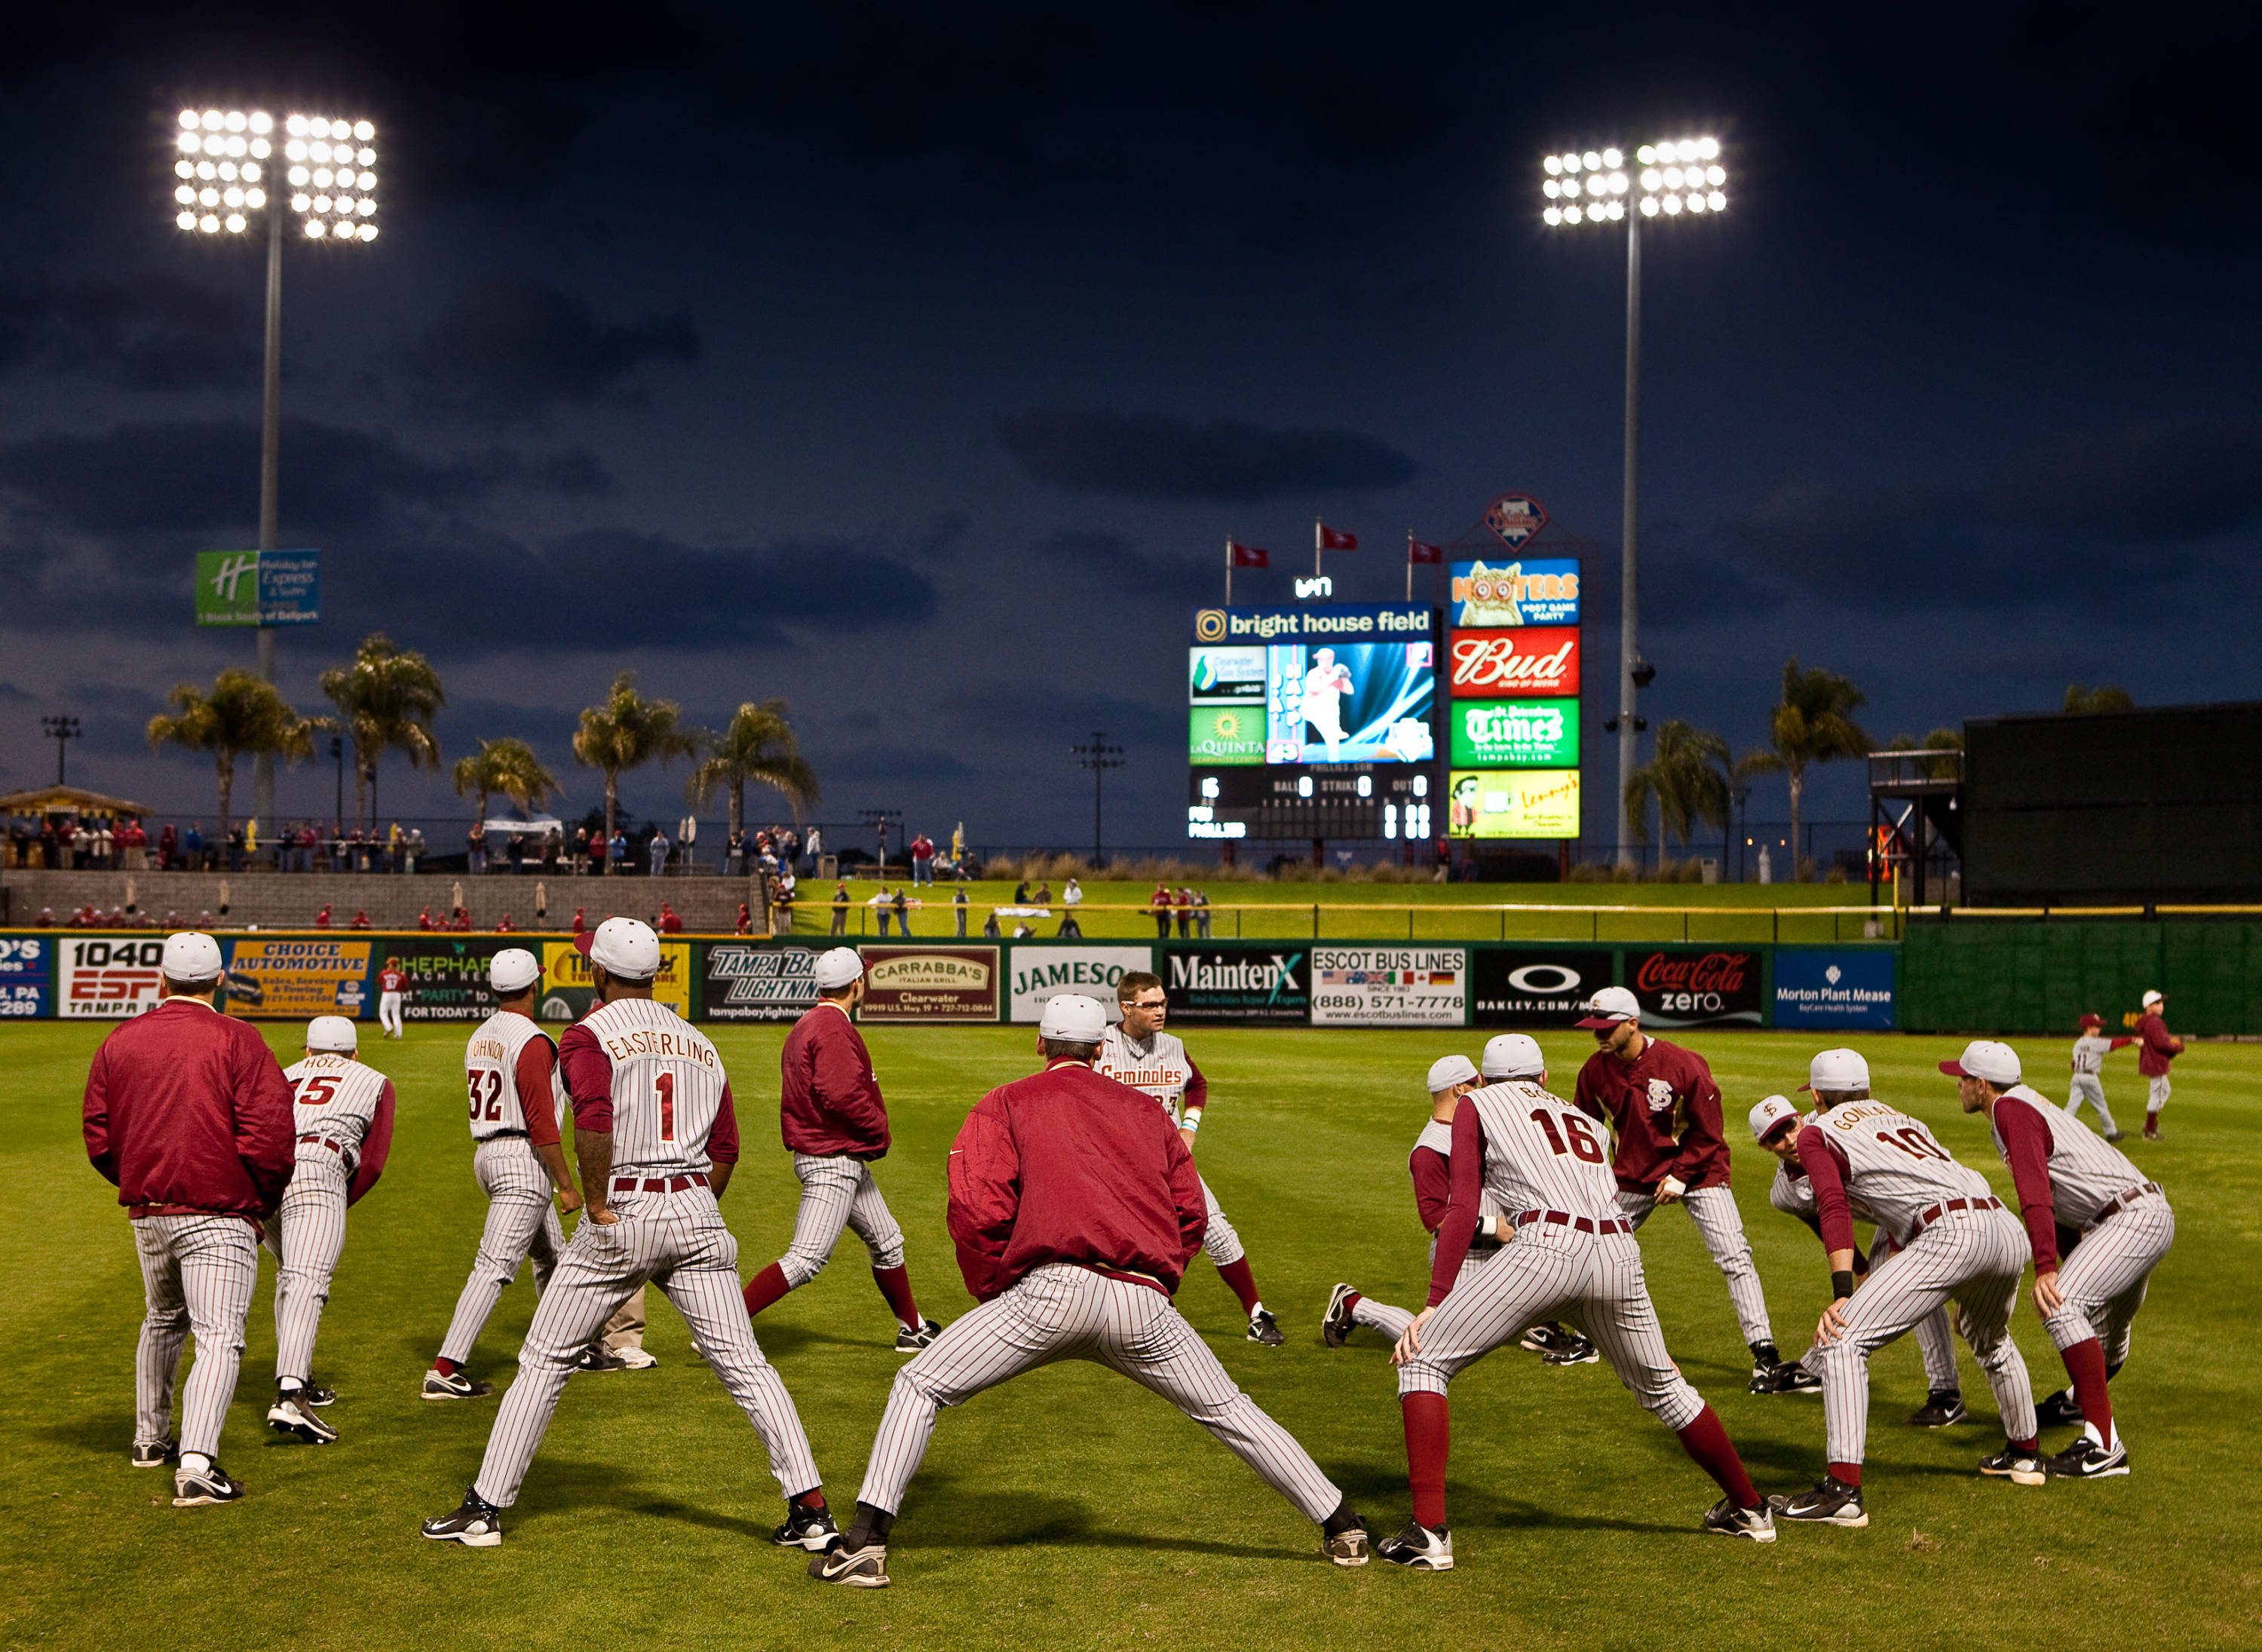 The Seminoles stretch before the start of the game against the Phillies